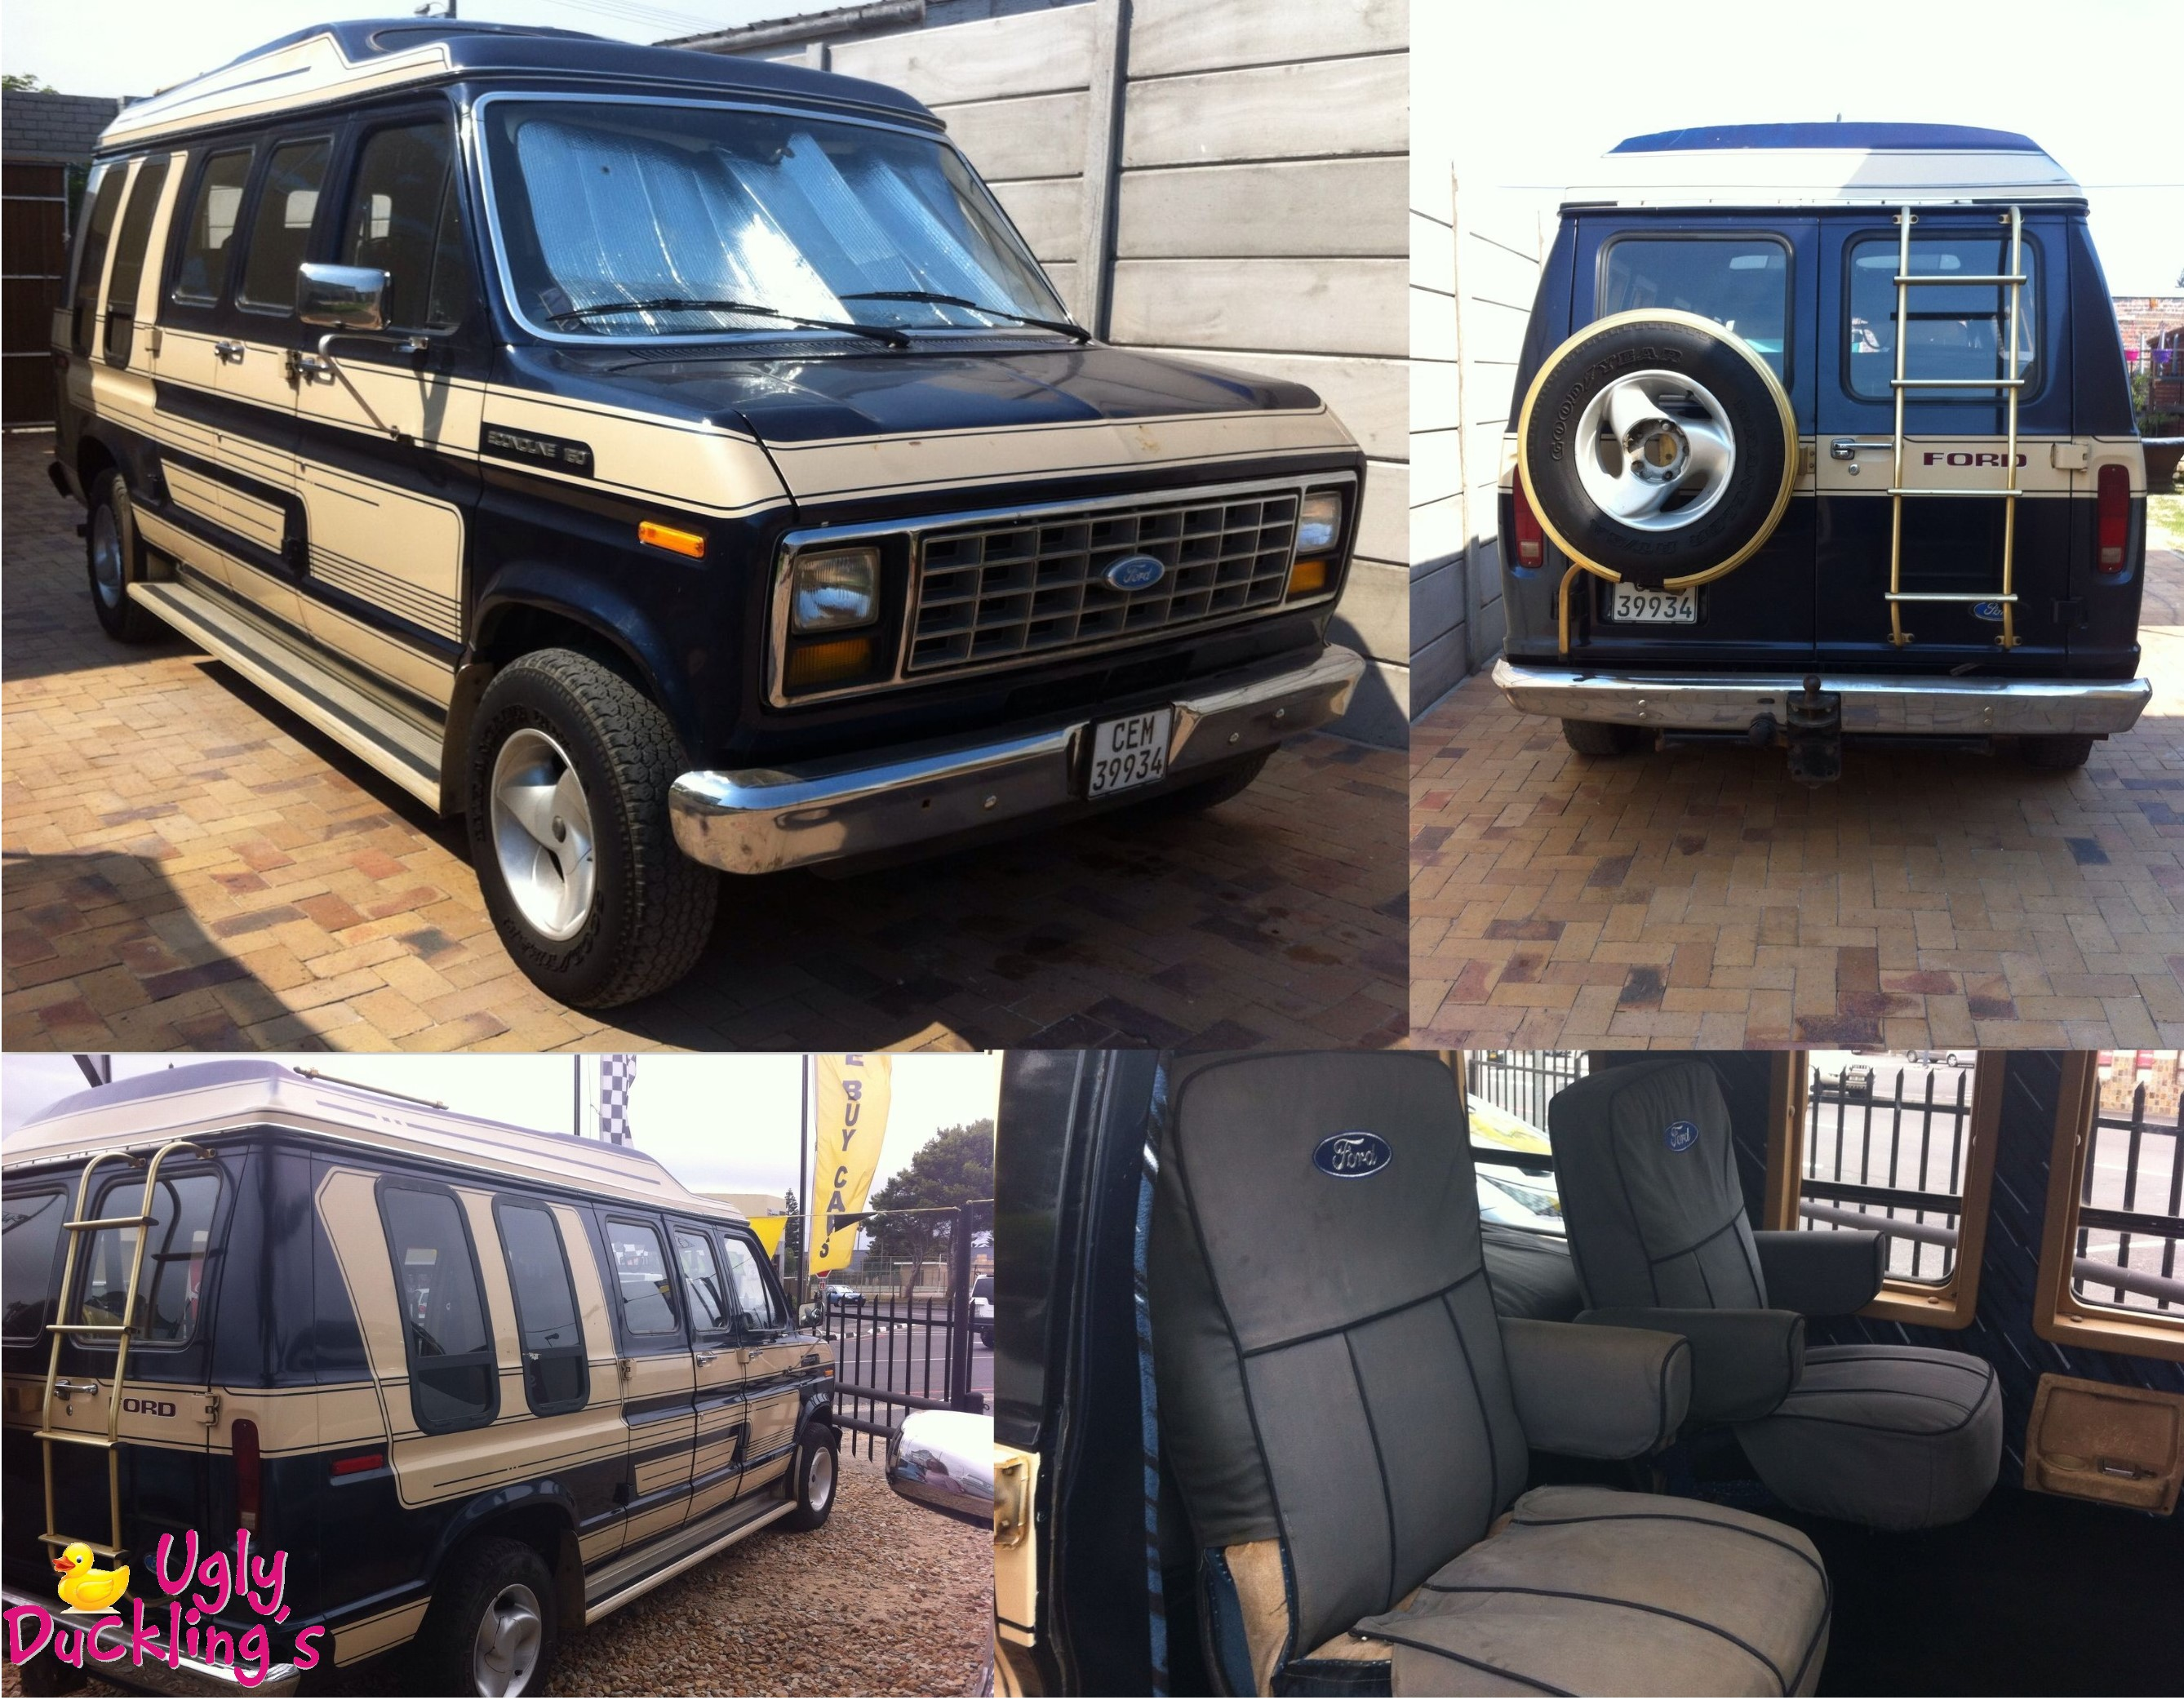 1985 Ford Econoline 150 lhd